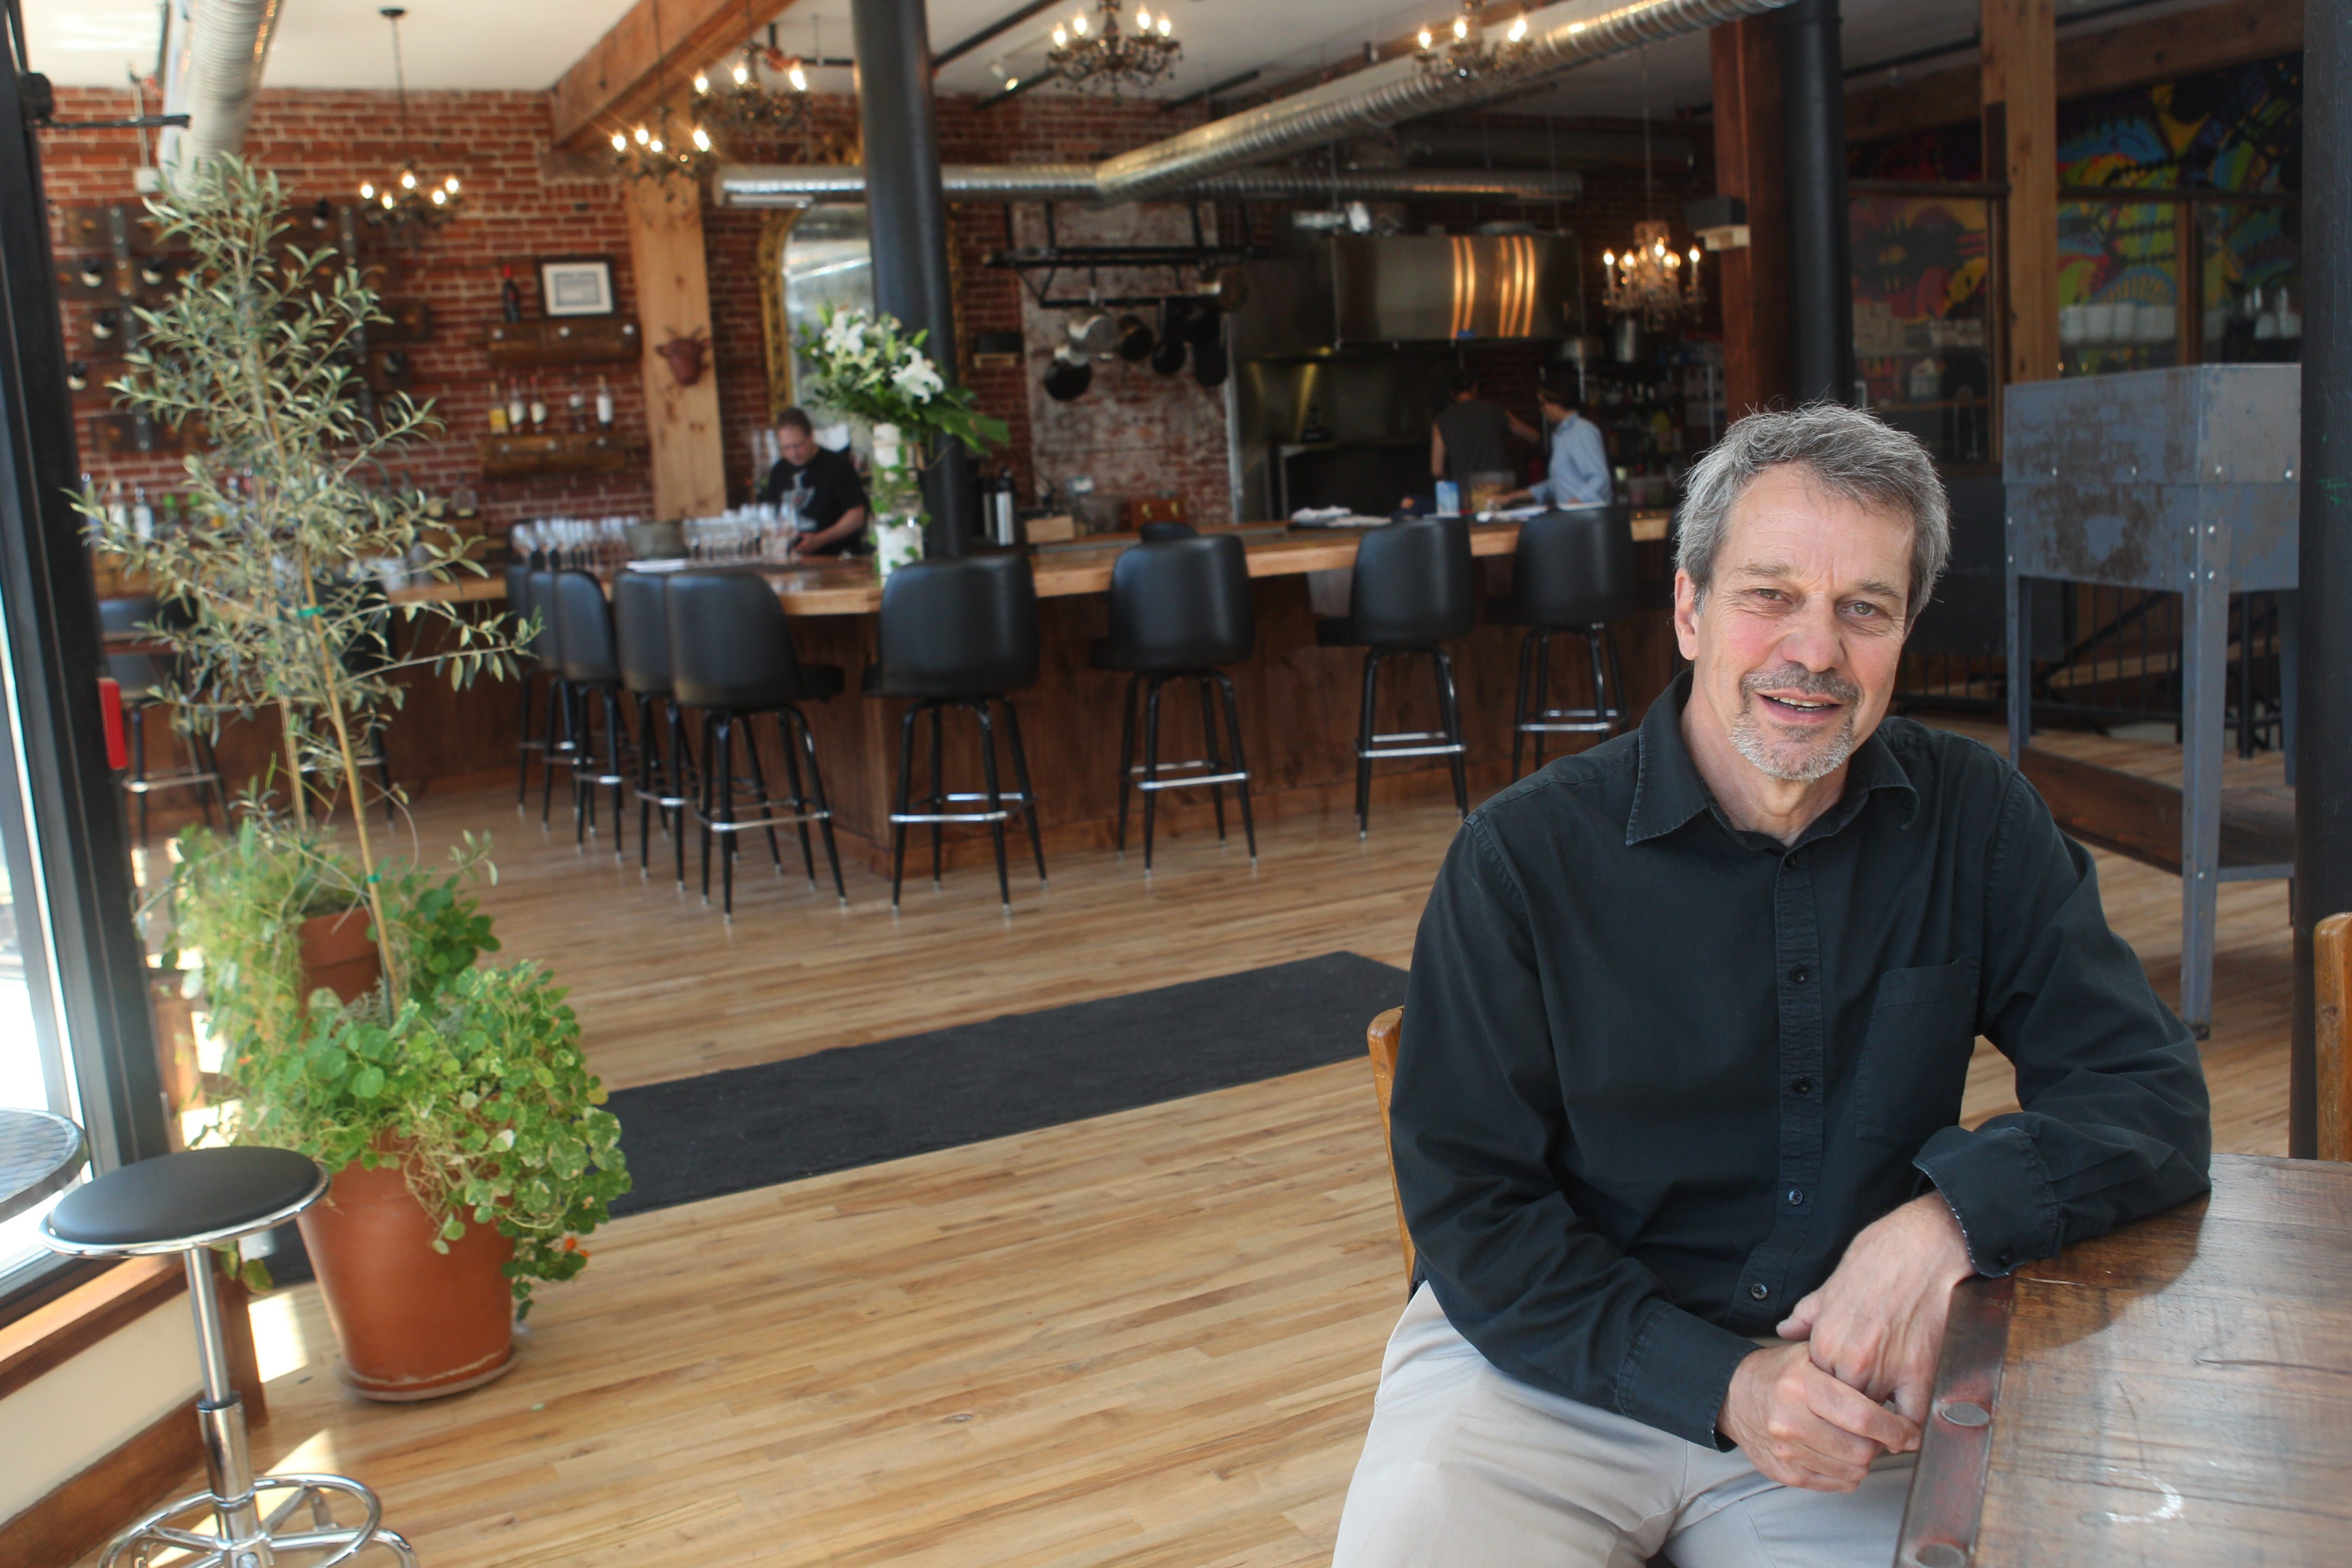 Developer Karl Frizlen bought the building that now houses Horsefeathers Market & Residences in May 2012.